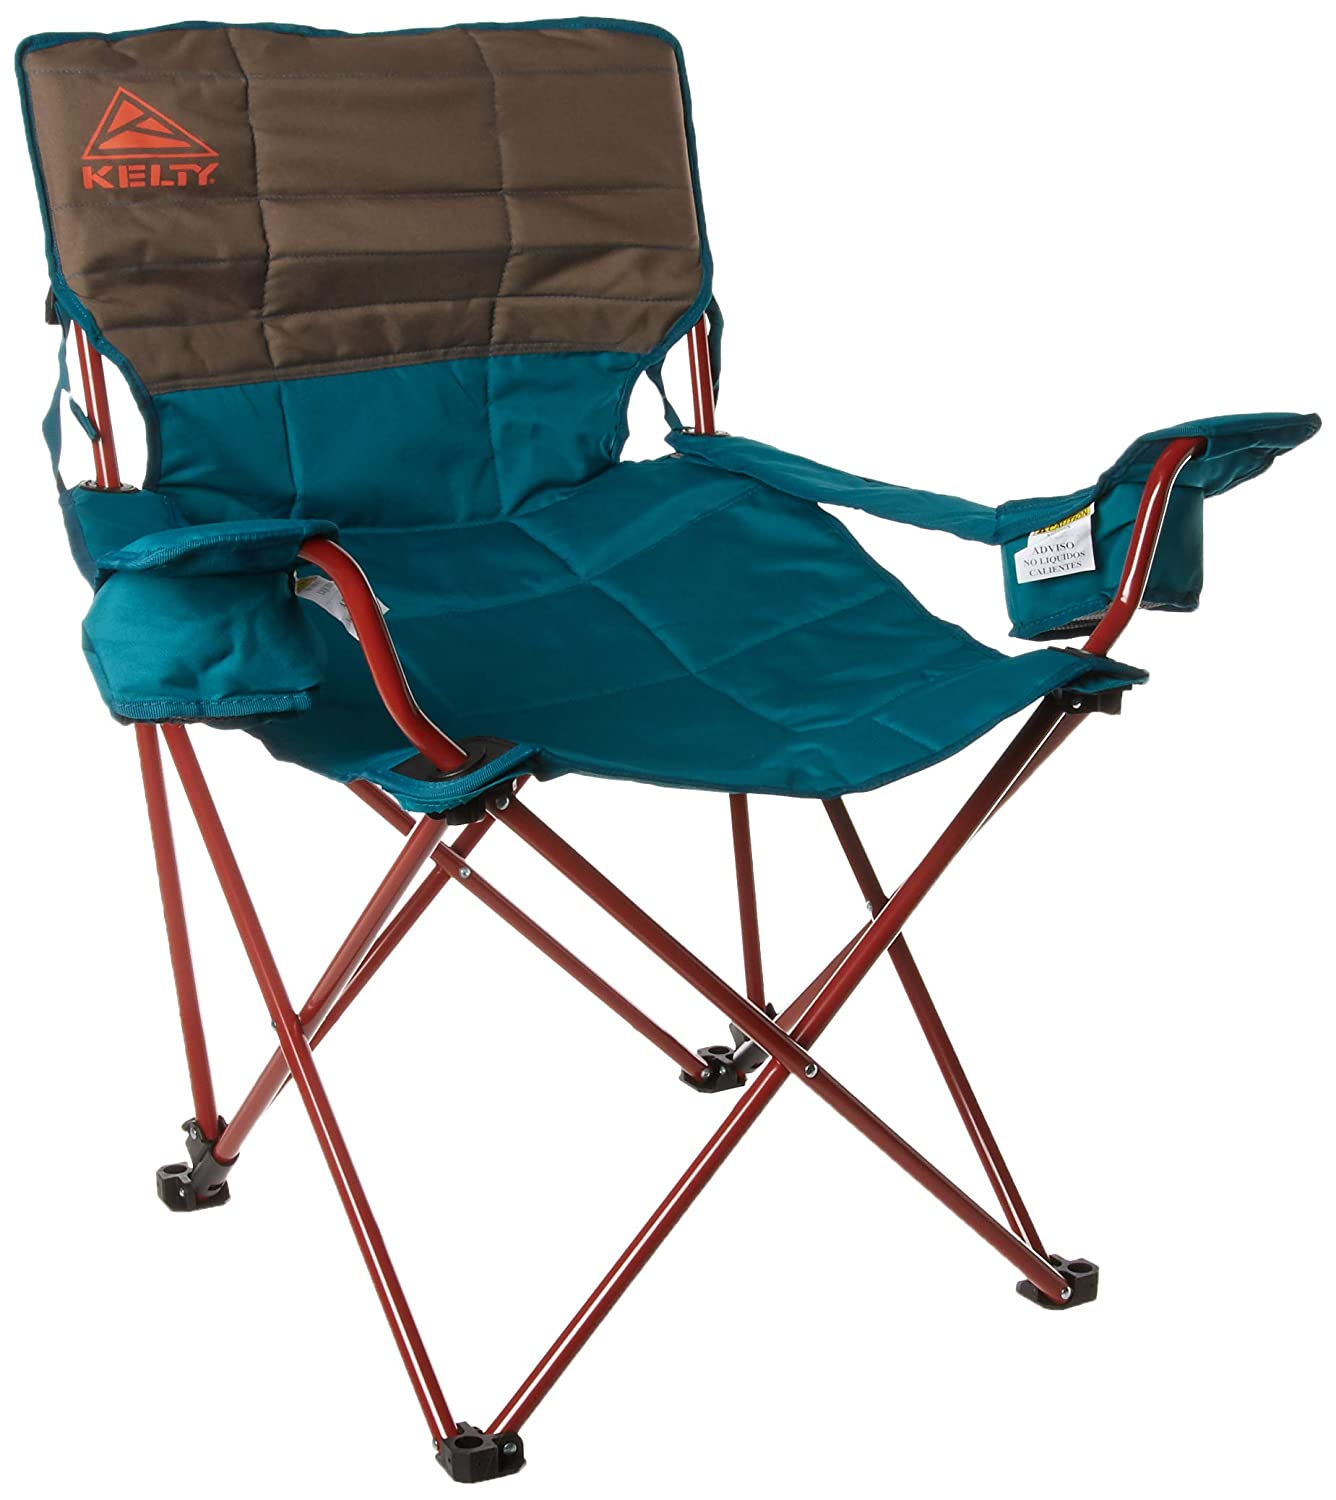 Kelty Deluxe Reclining Lounge Chair, Deep Lake Fallen Rock Folding Camp Chair for Festivals, Camping and Beach Days – Updated 2019 Model